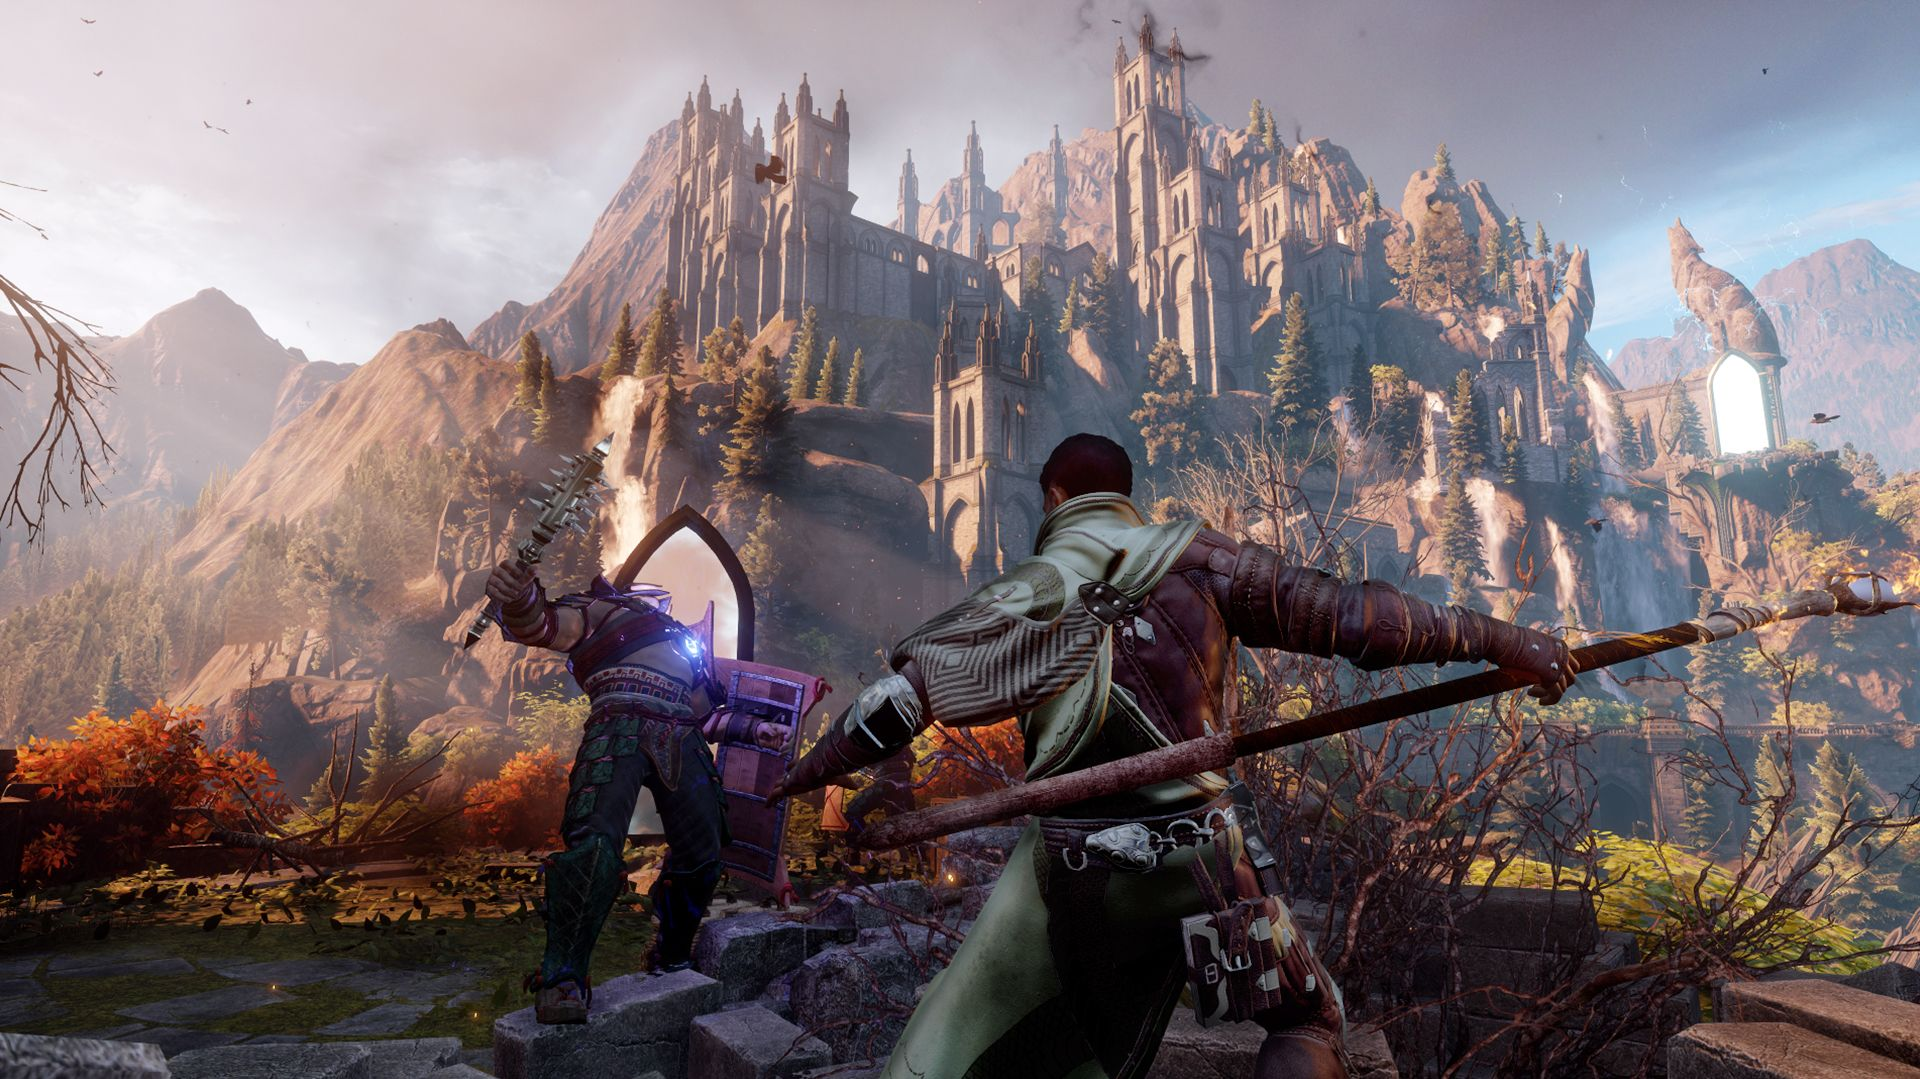 Dragon Age 4 Leaks, Dragon Age 4 Theories and Rumors | GAMERS DECIDE